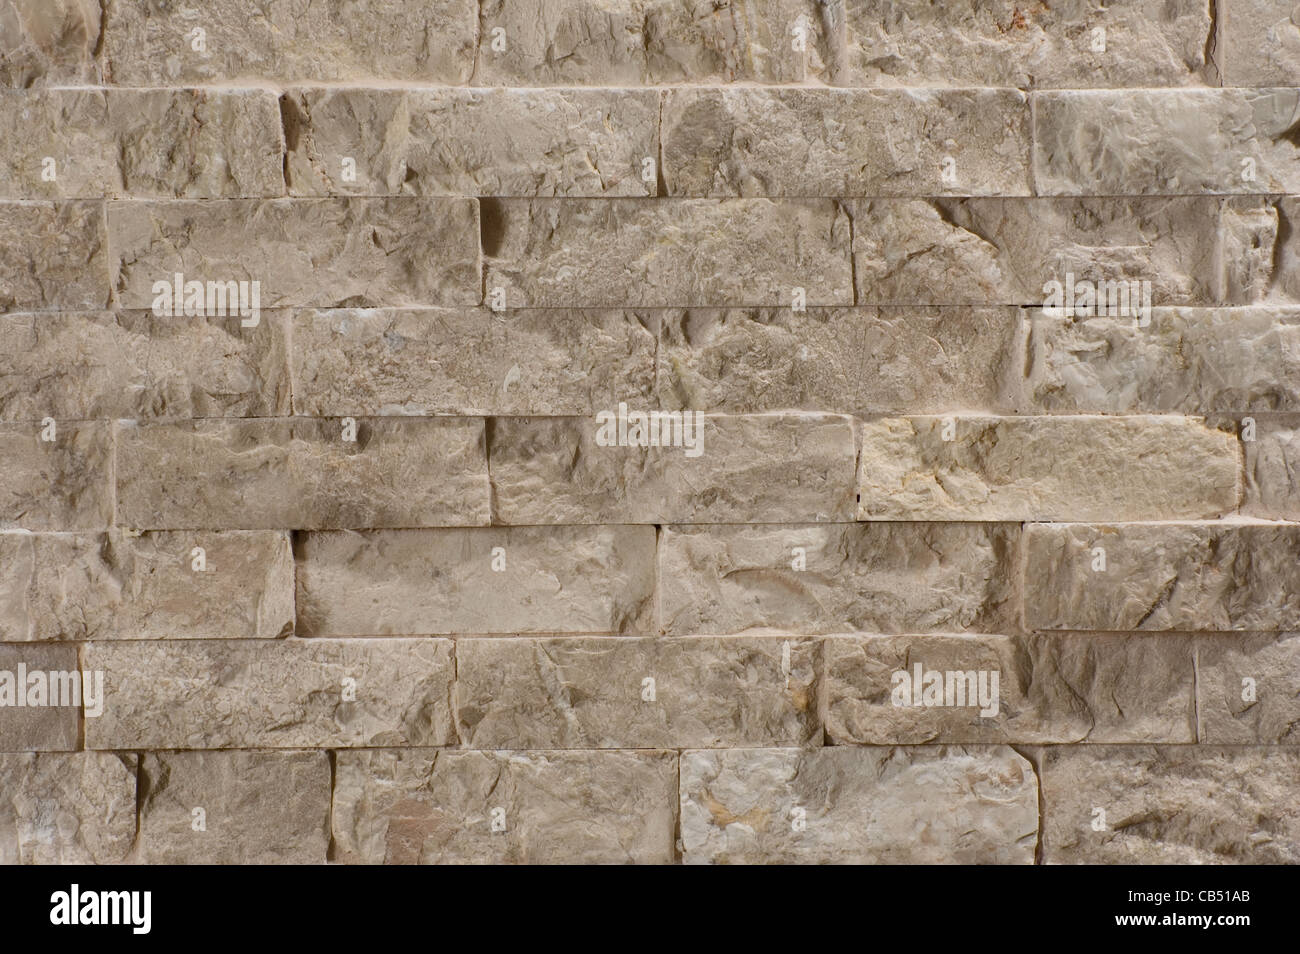 Stonewall abstract background - Stock Image